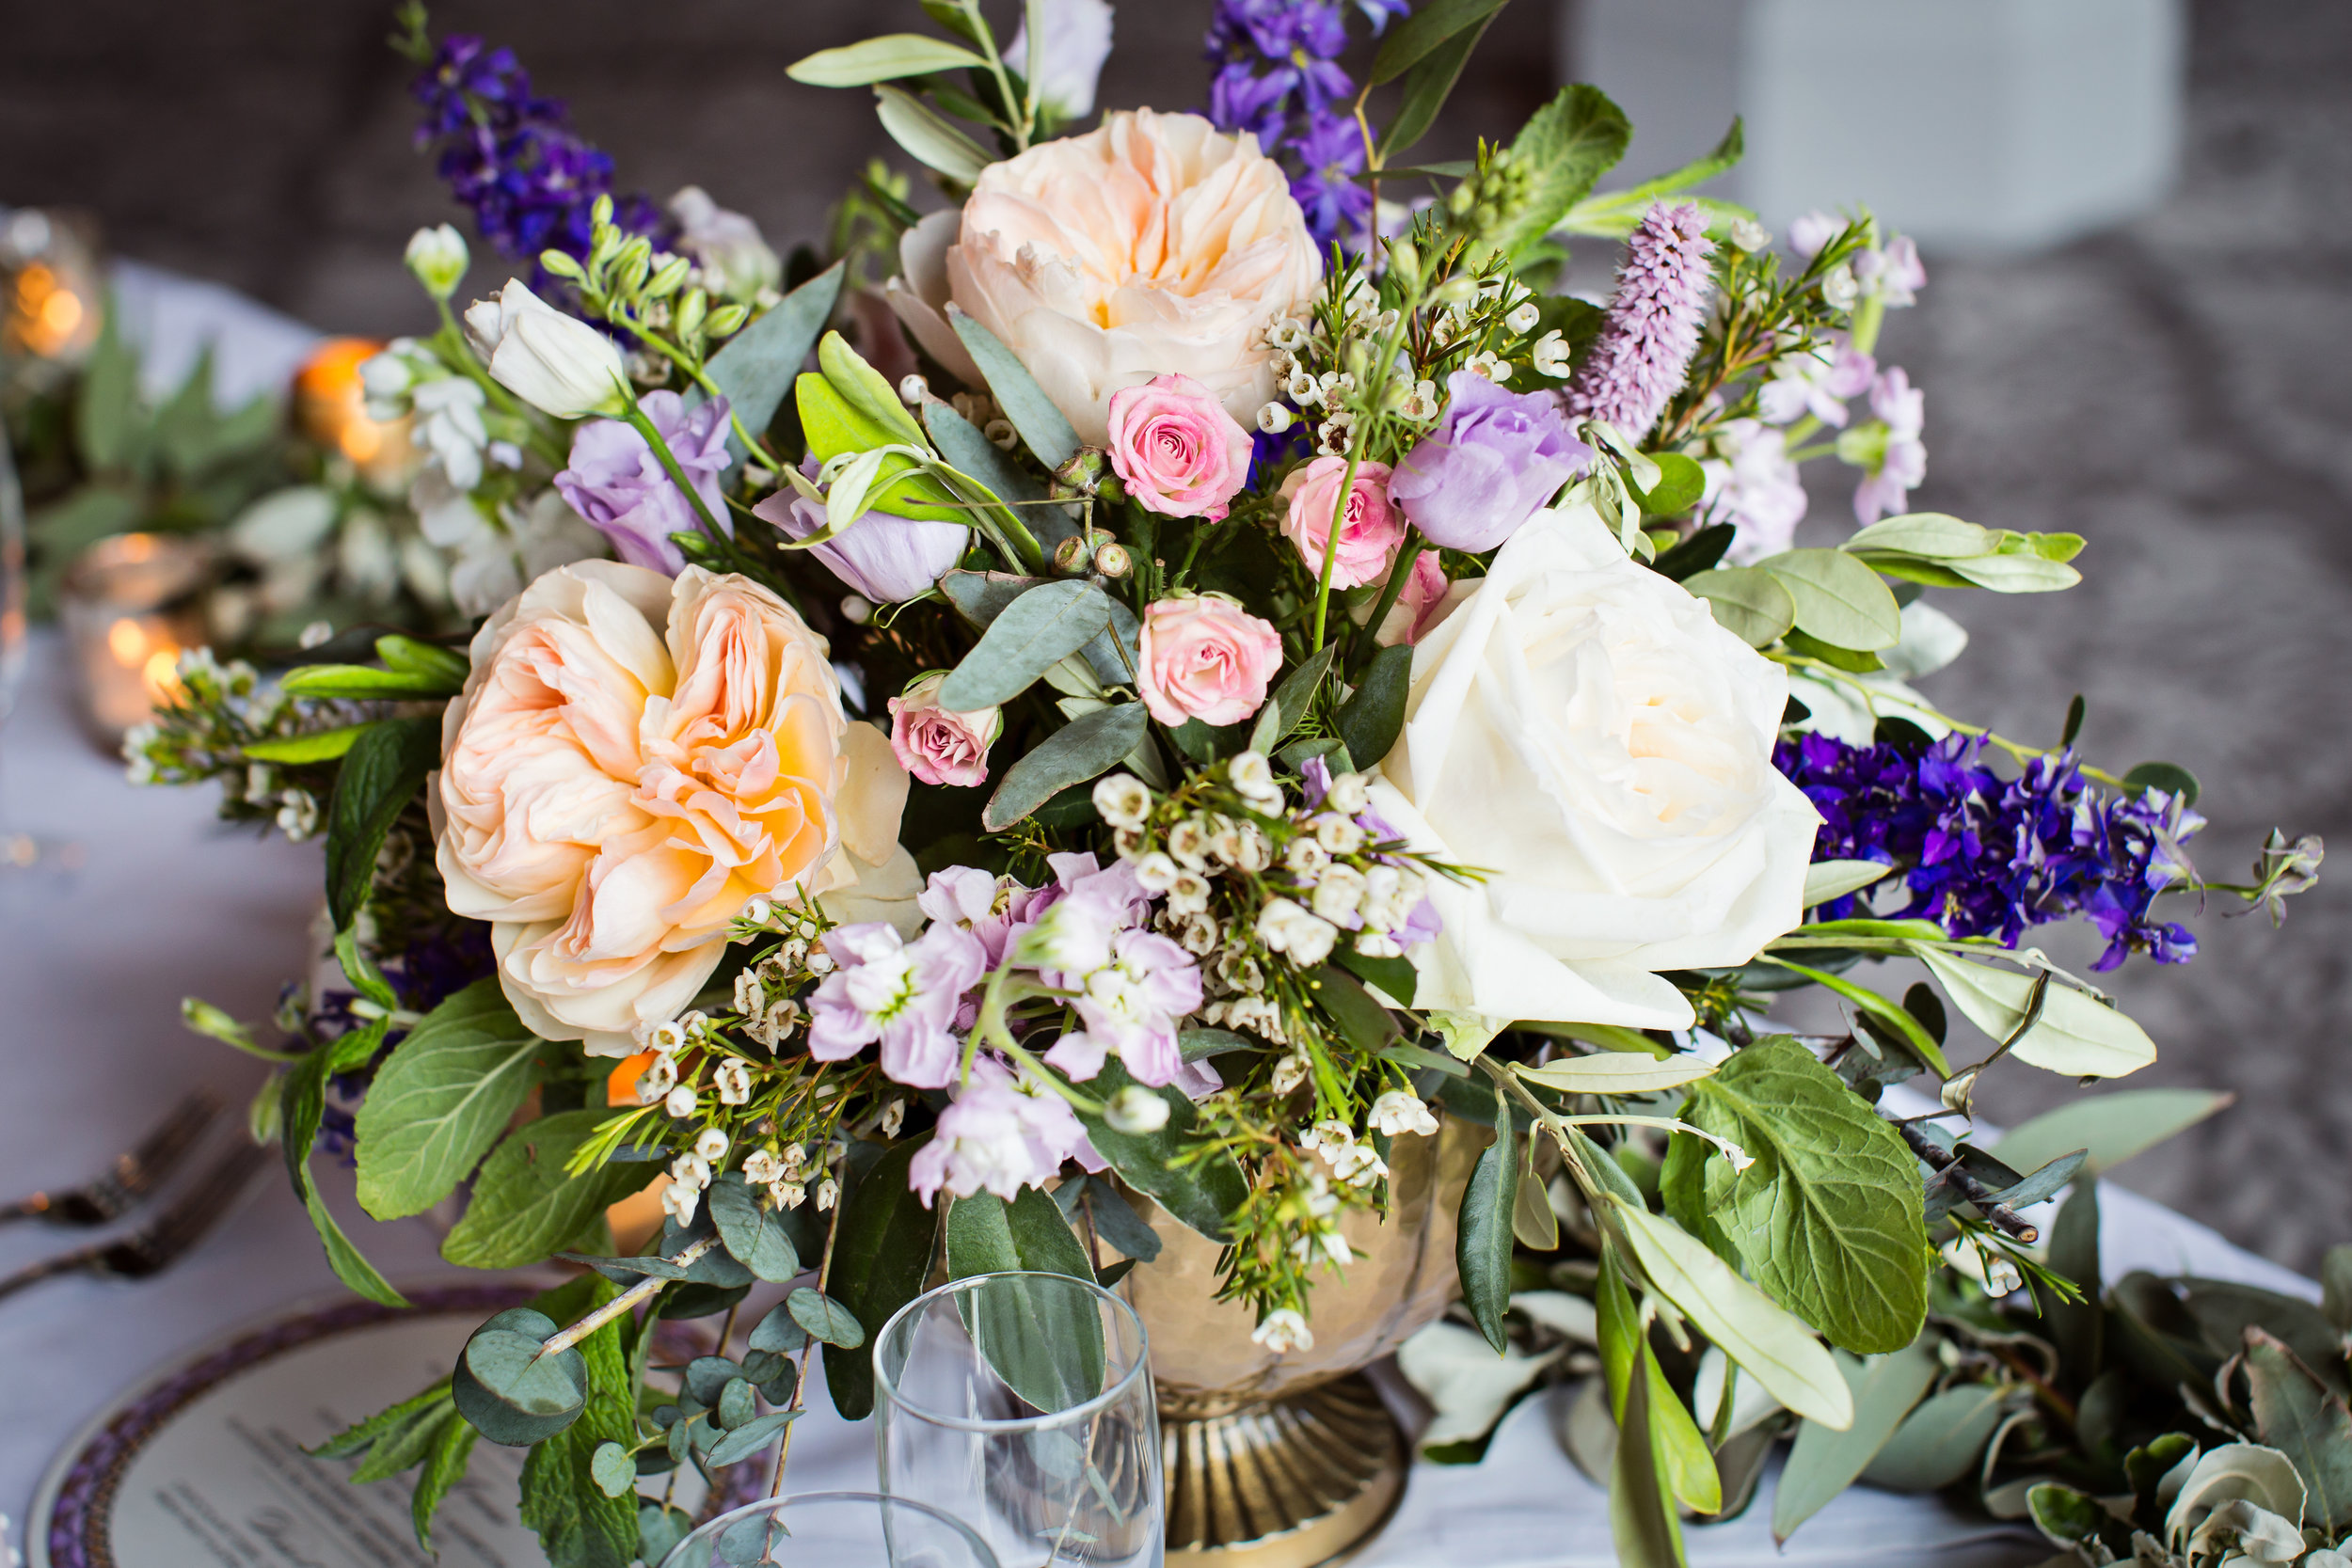 Luxury Floral Designs - Natasha Coustol Floral Designs